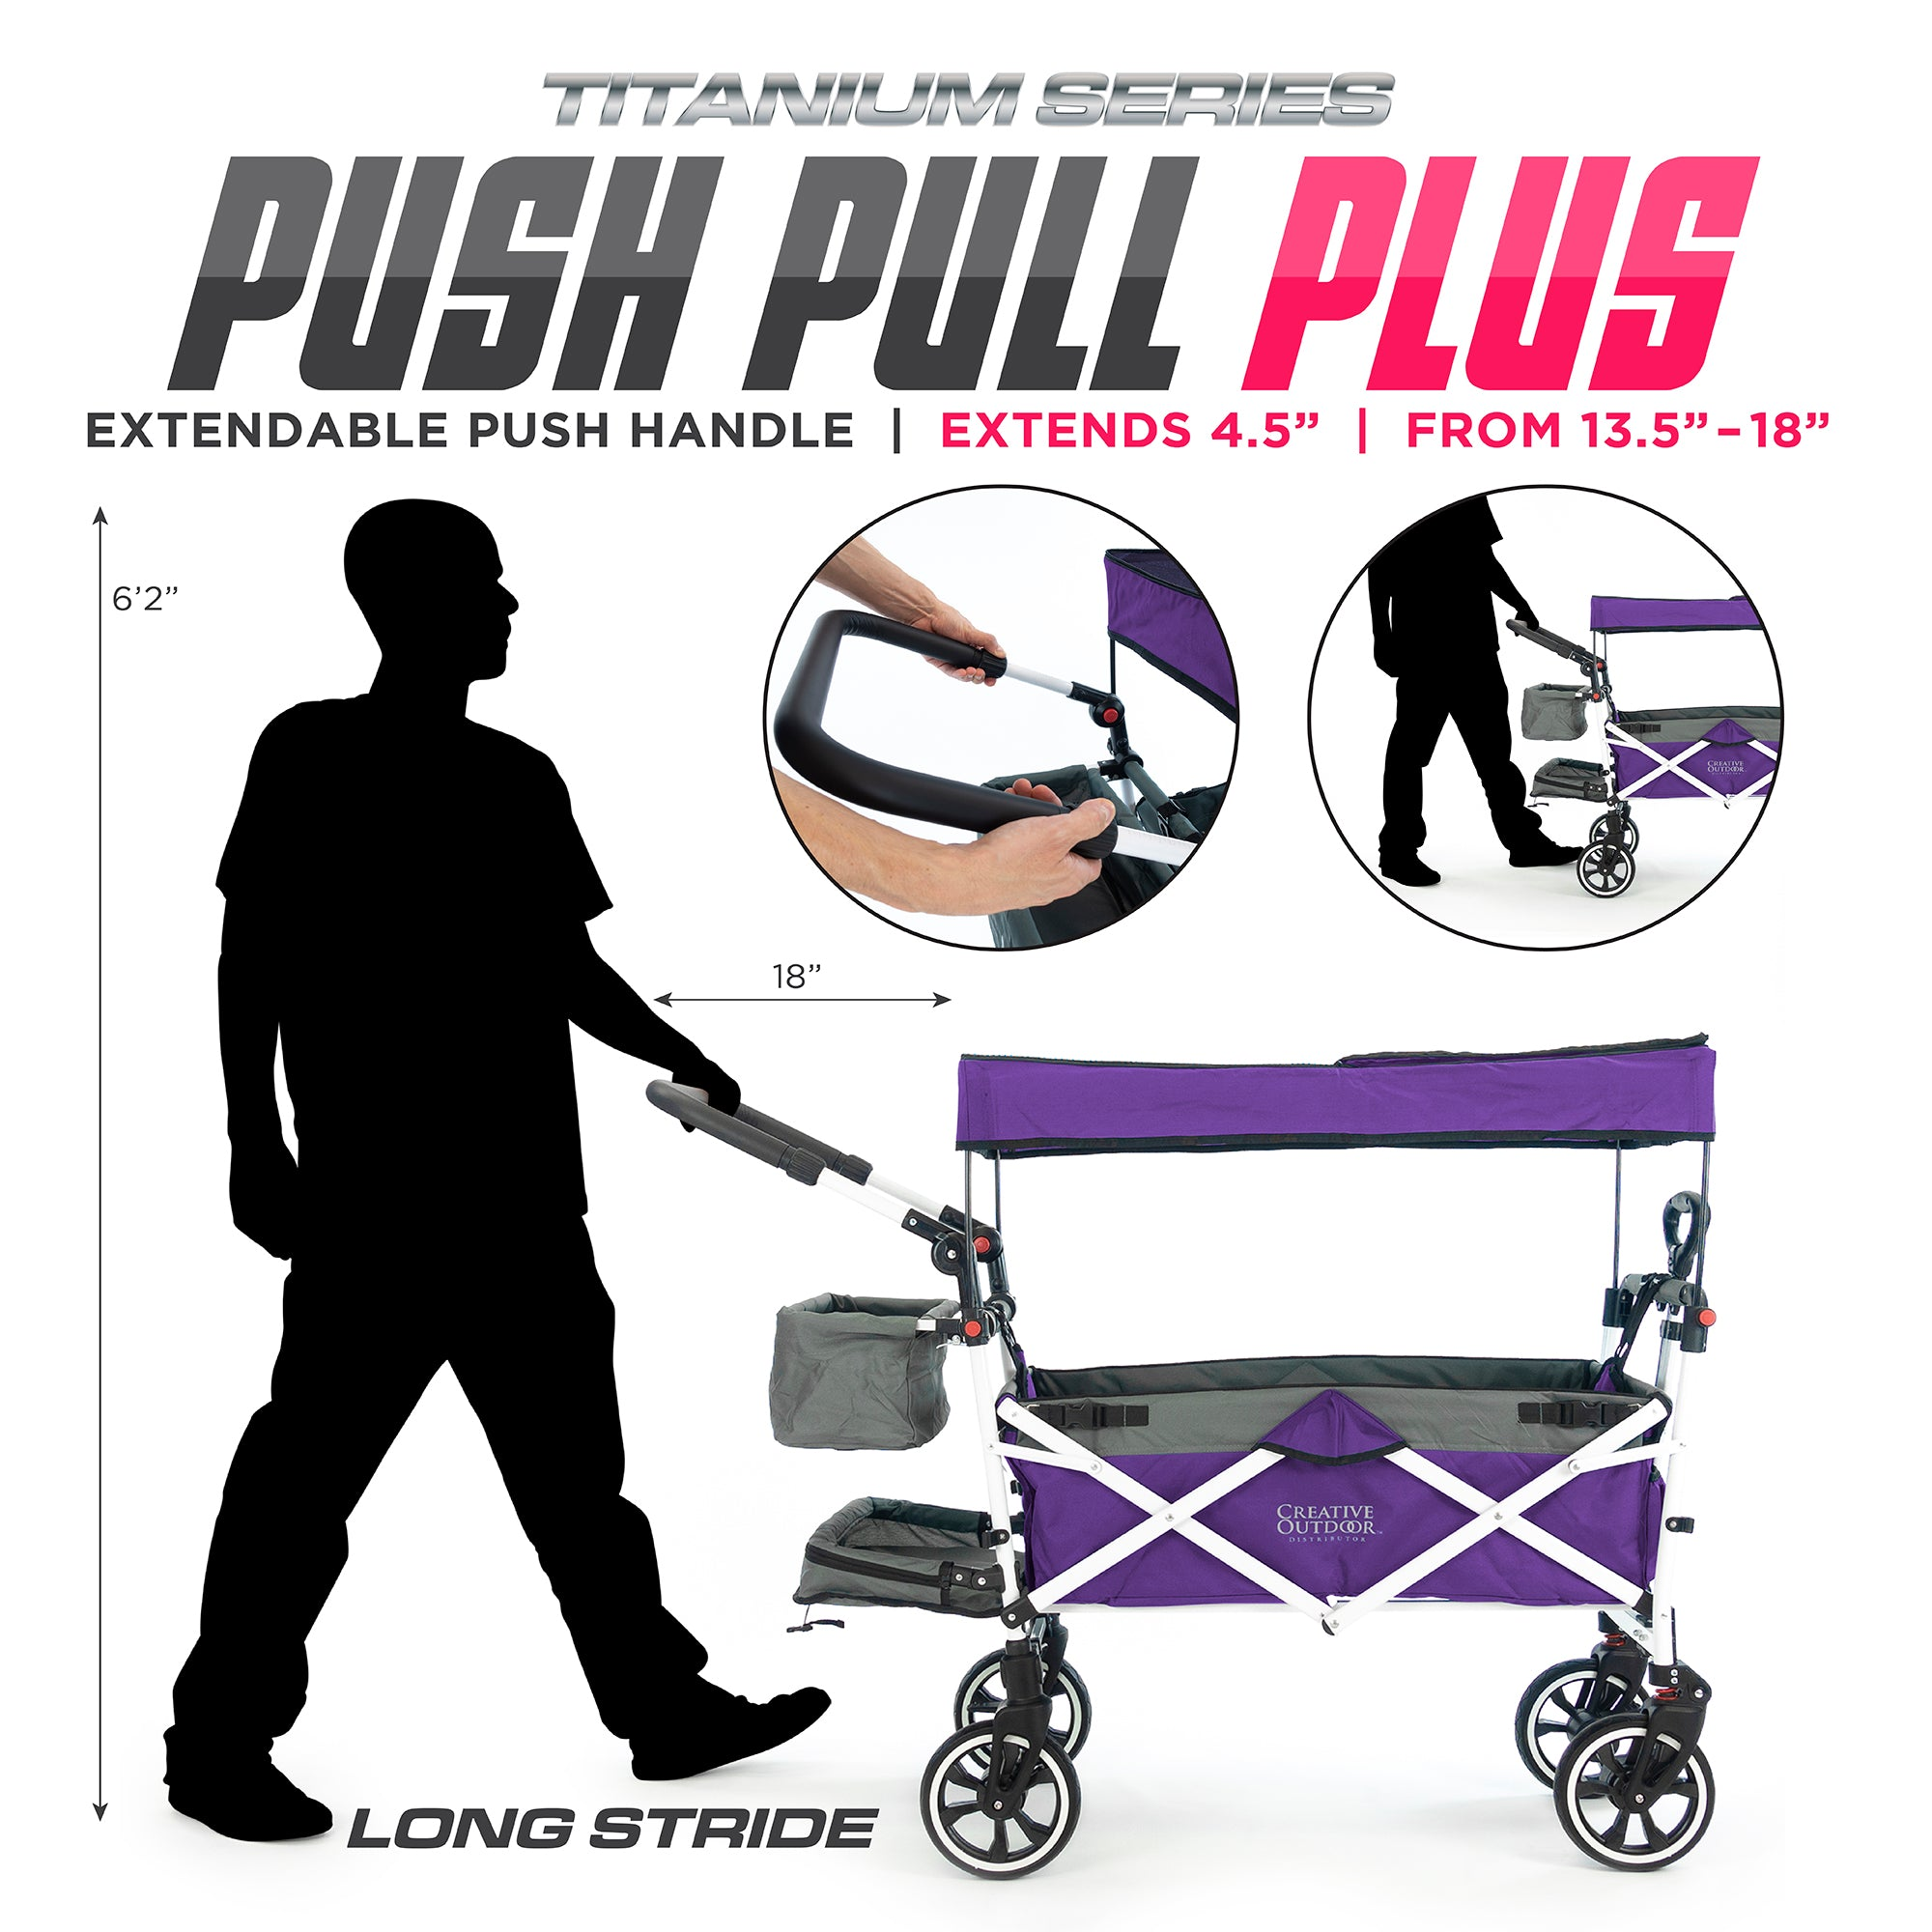 Push Pull Folding Stroller Wagon Titanium Series Purple PLUS Extendable Handle